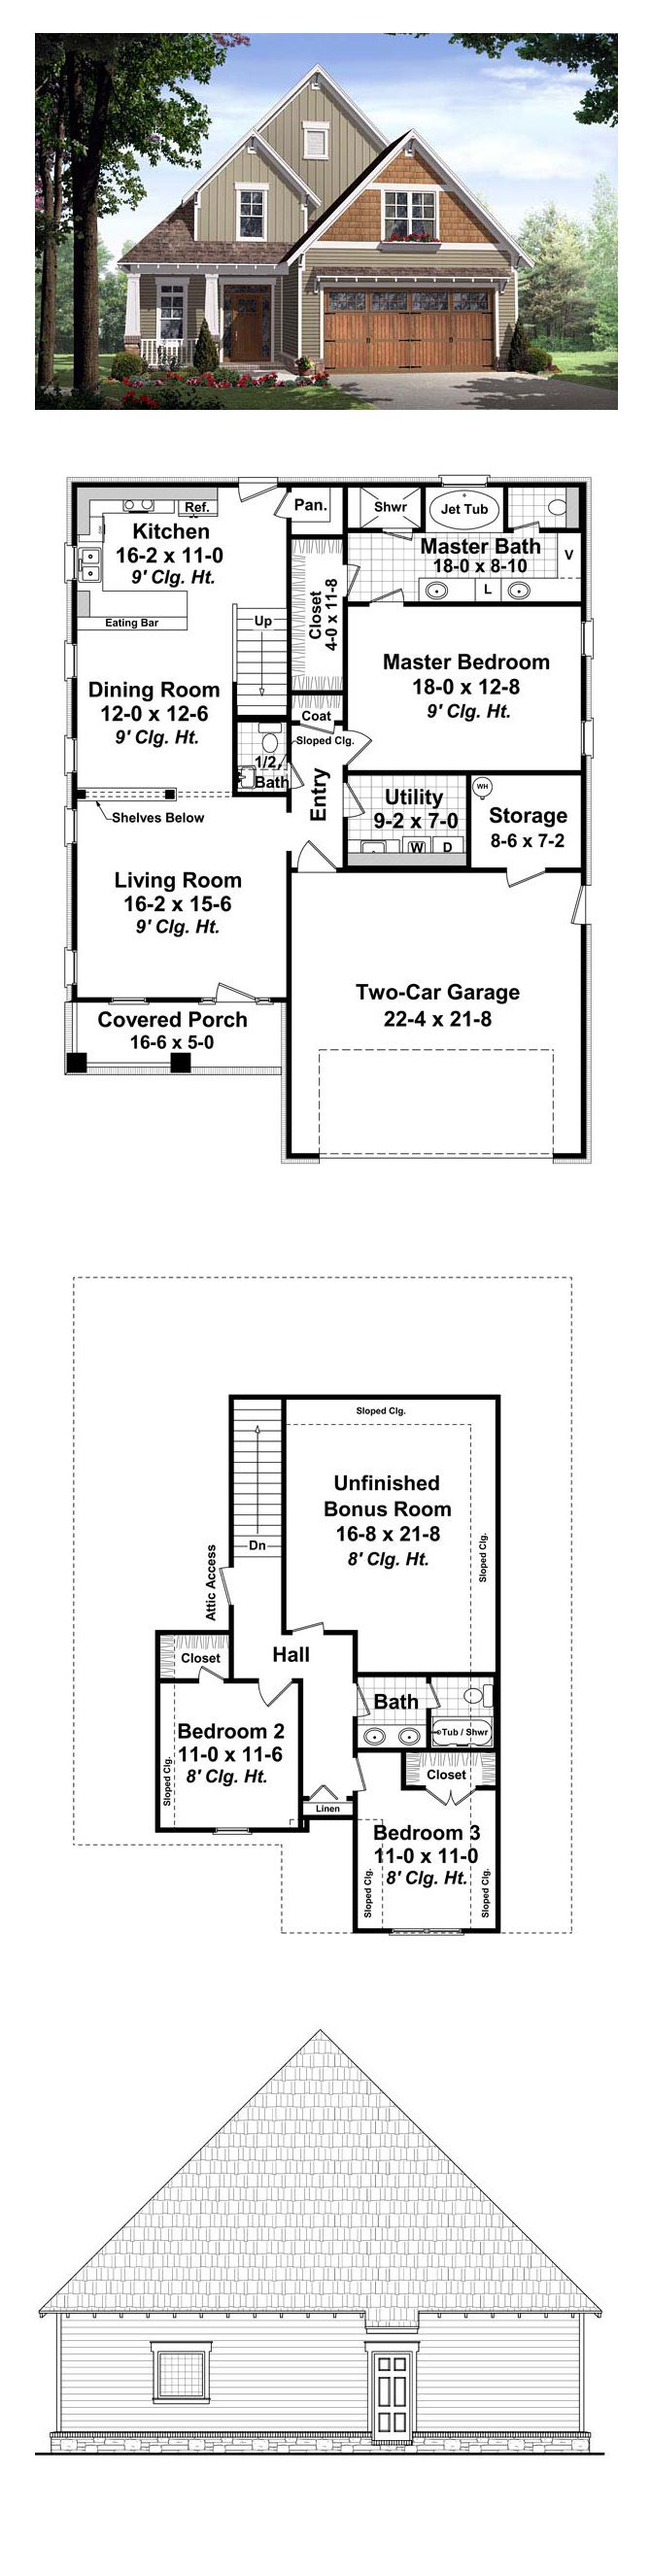 17 best bungalow house plans images on pinterest cool house bungalow style cool house plan id chp 37747 total living area 1802 sq ft 3 bedrooms 2 5 bathrooms the front and rear covered porches add usable